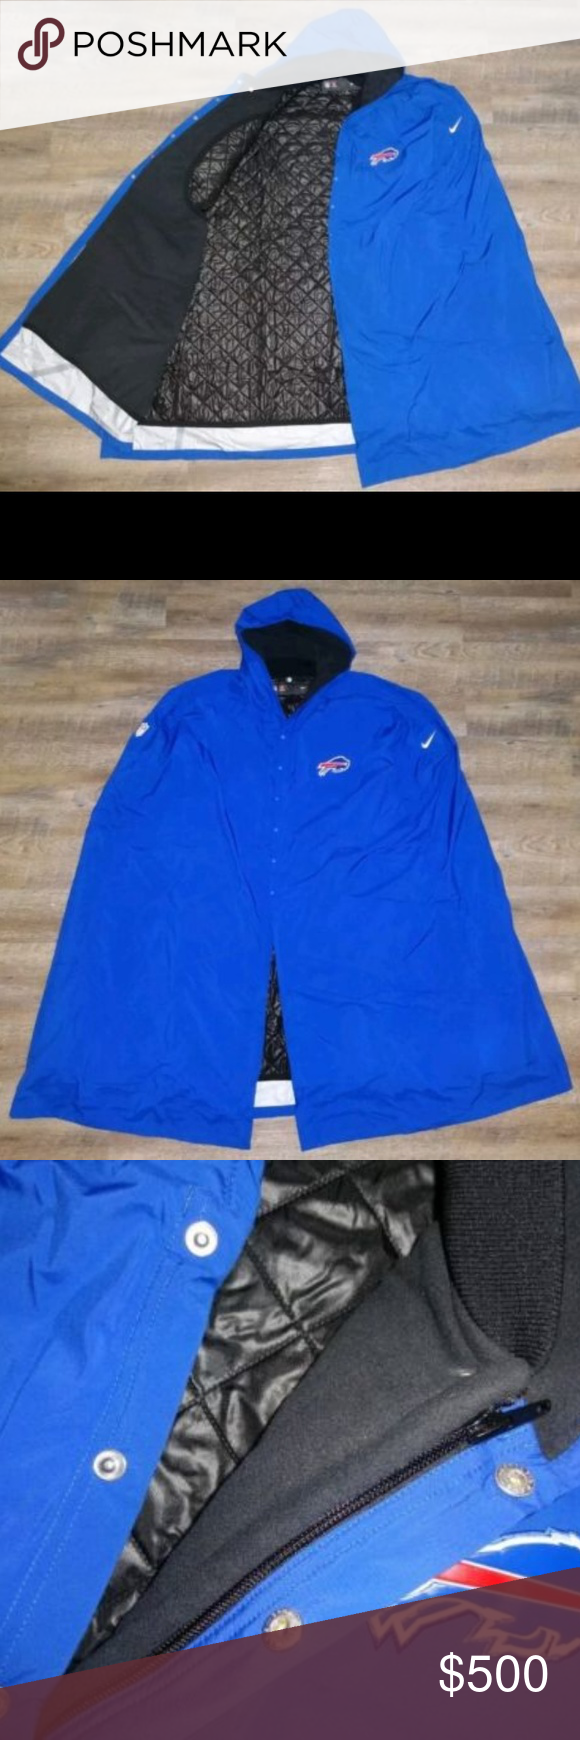 ee1f738d7 Nike NFL Buffalo Bills 2017 Team Issued Cape Parka Nike NFL Buffalo Bills  2017 Team Issued Cape Parka Quilted Sideline Jacket. NOT FOUND IN STORES!!